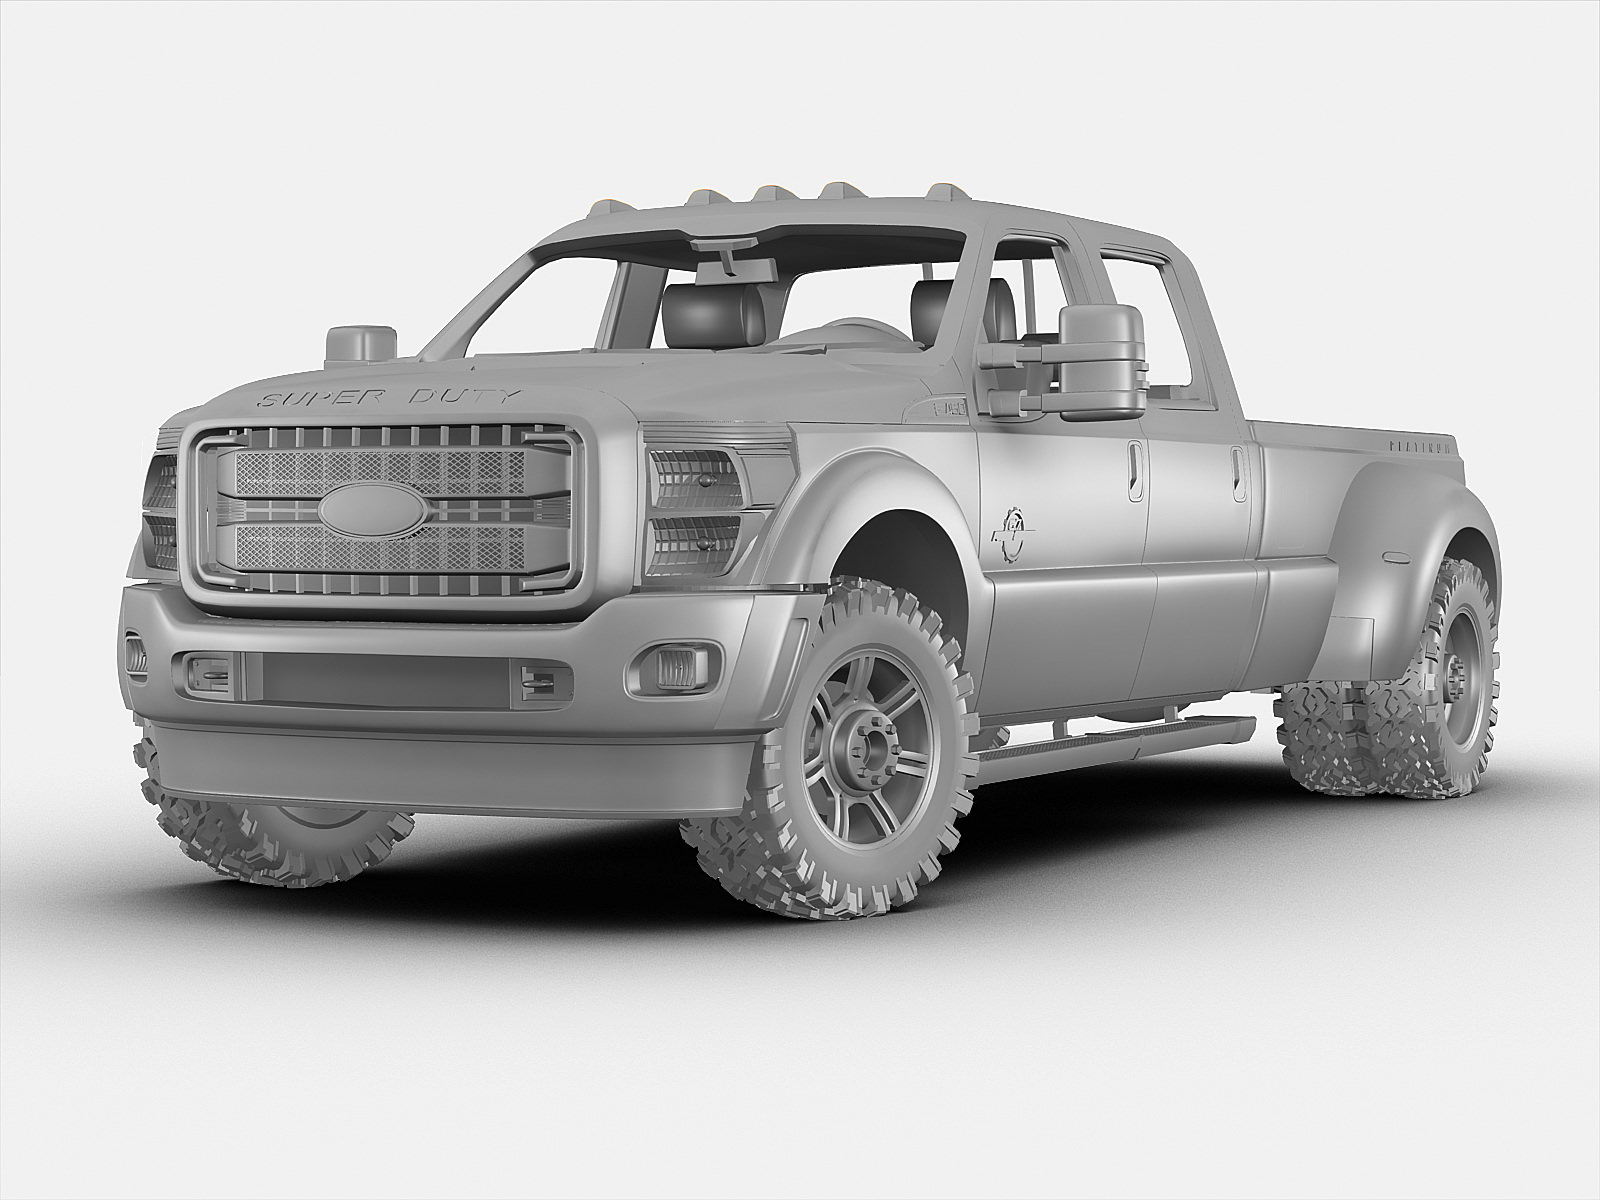 New 2016 Ford Super Duty F-450 DRW Prices - NADAguides |New Model Super Duty